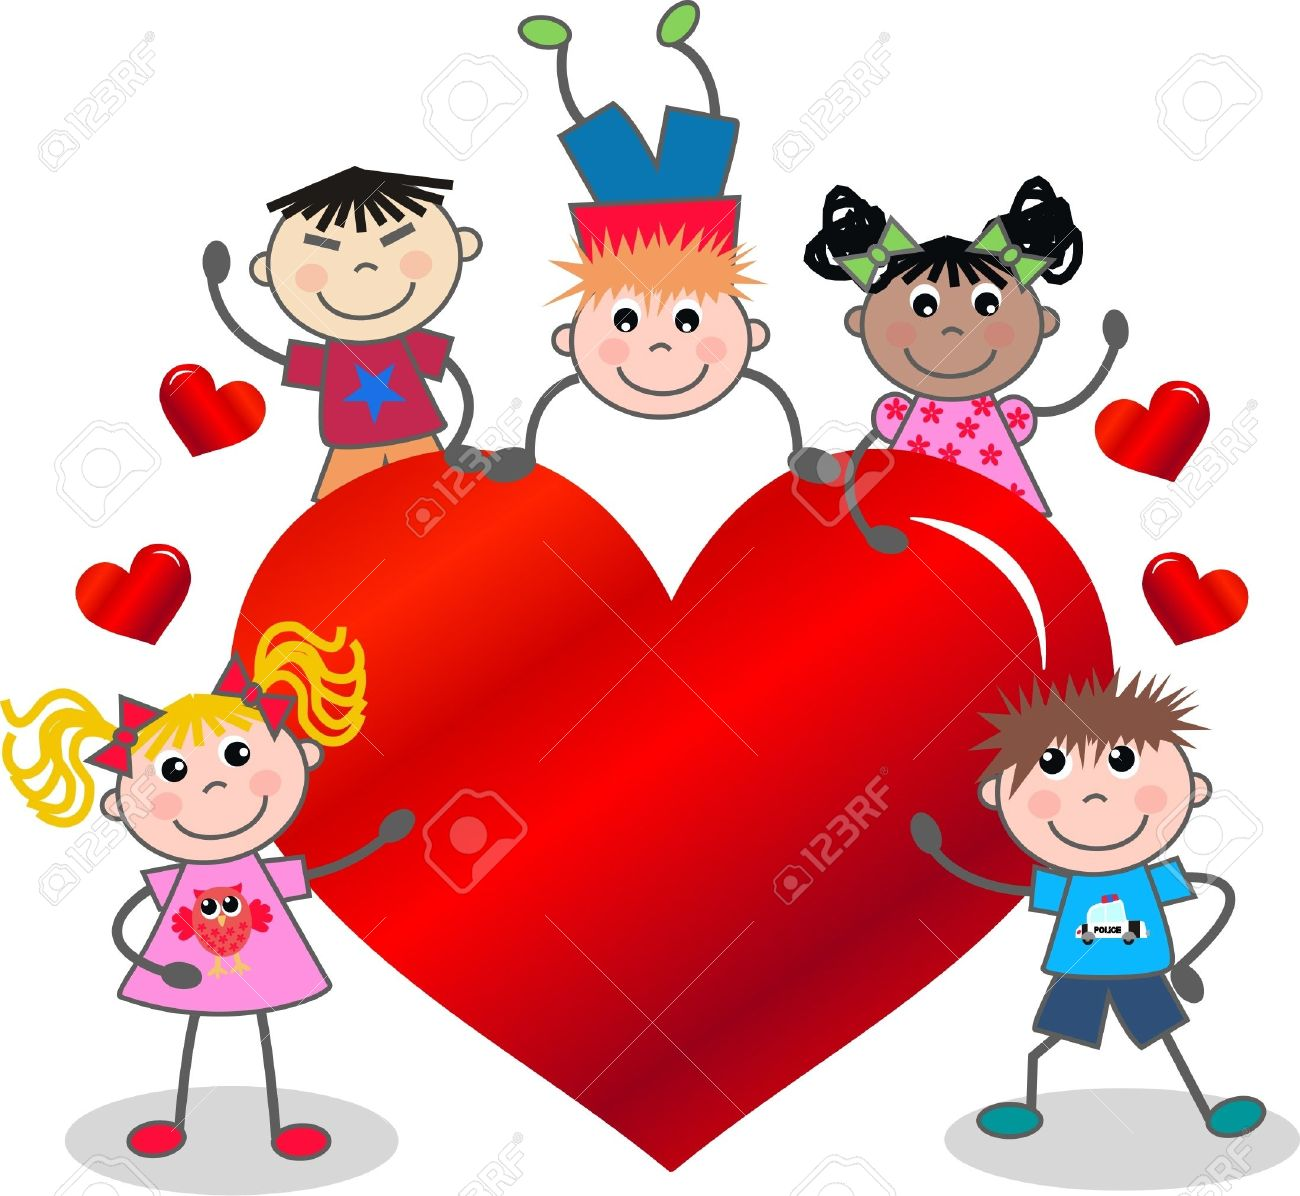 valentines day or birthday royalty free cliparts vectors and